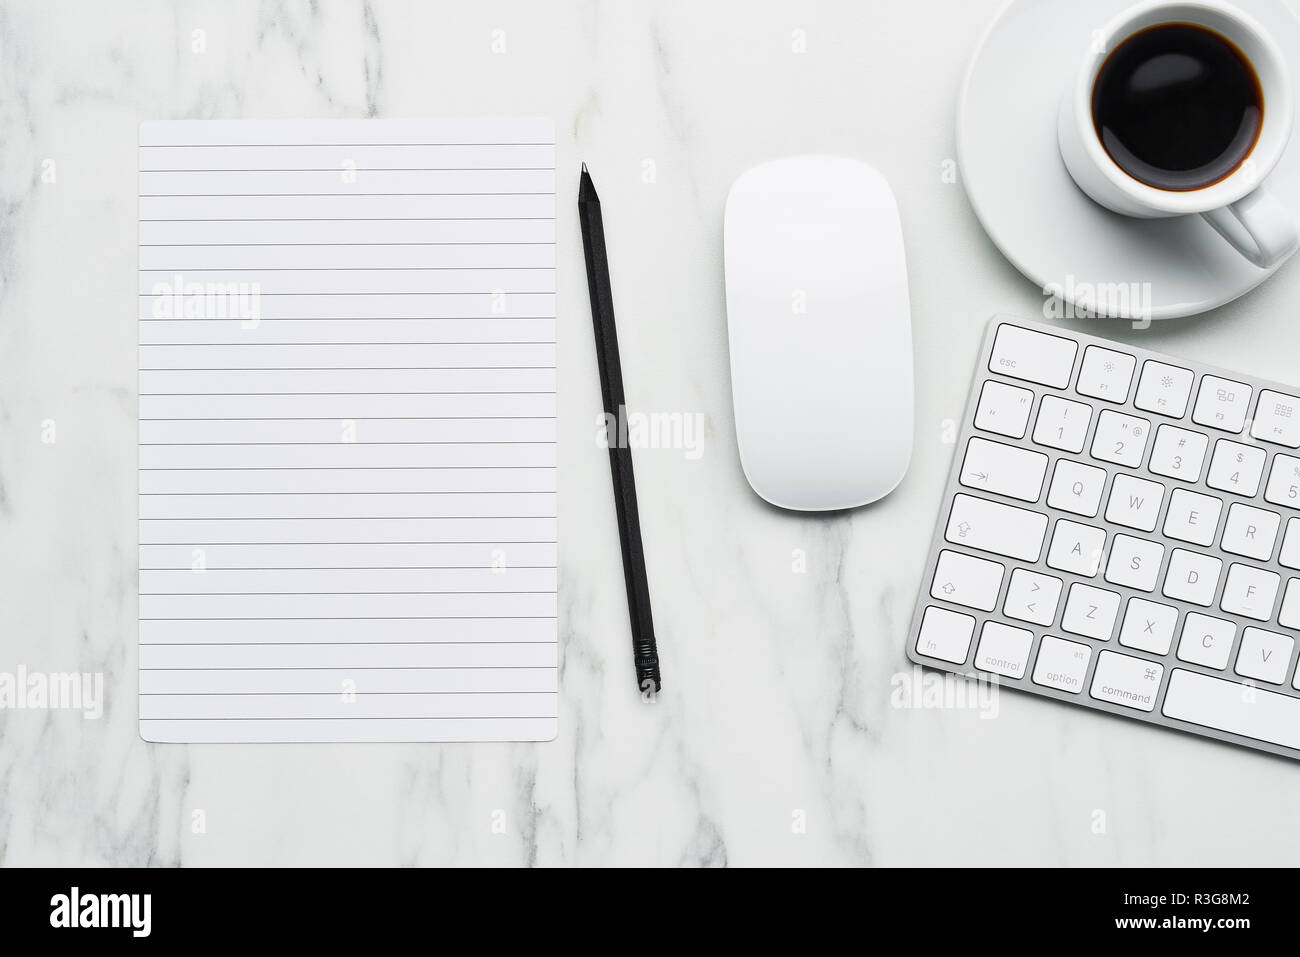 Business Composition With White Computer Keyboard Mouse Coffee Cup Paper And Pencil On White Marble Background Coffee Break Concept Top View Wit Stock Photo Alamy